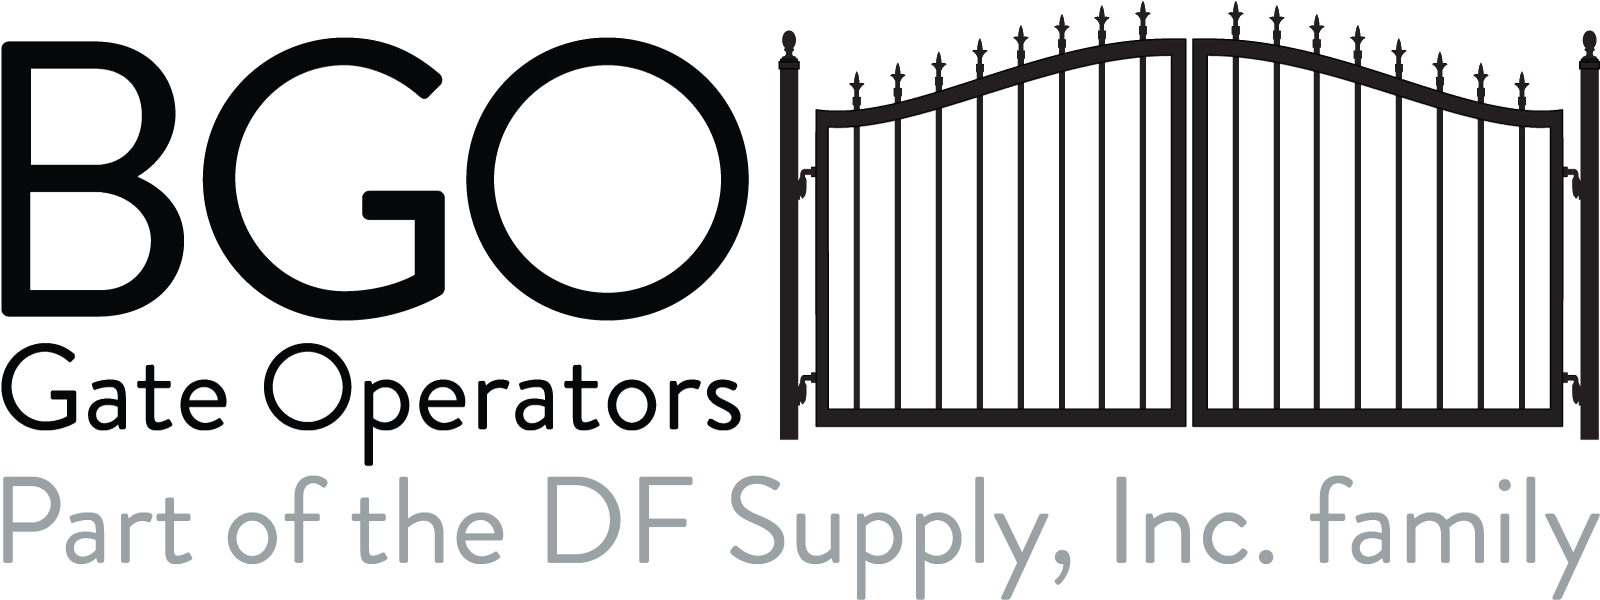 BFT Gate Openers - Part of the DF Supply, Inc. family